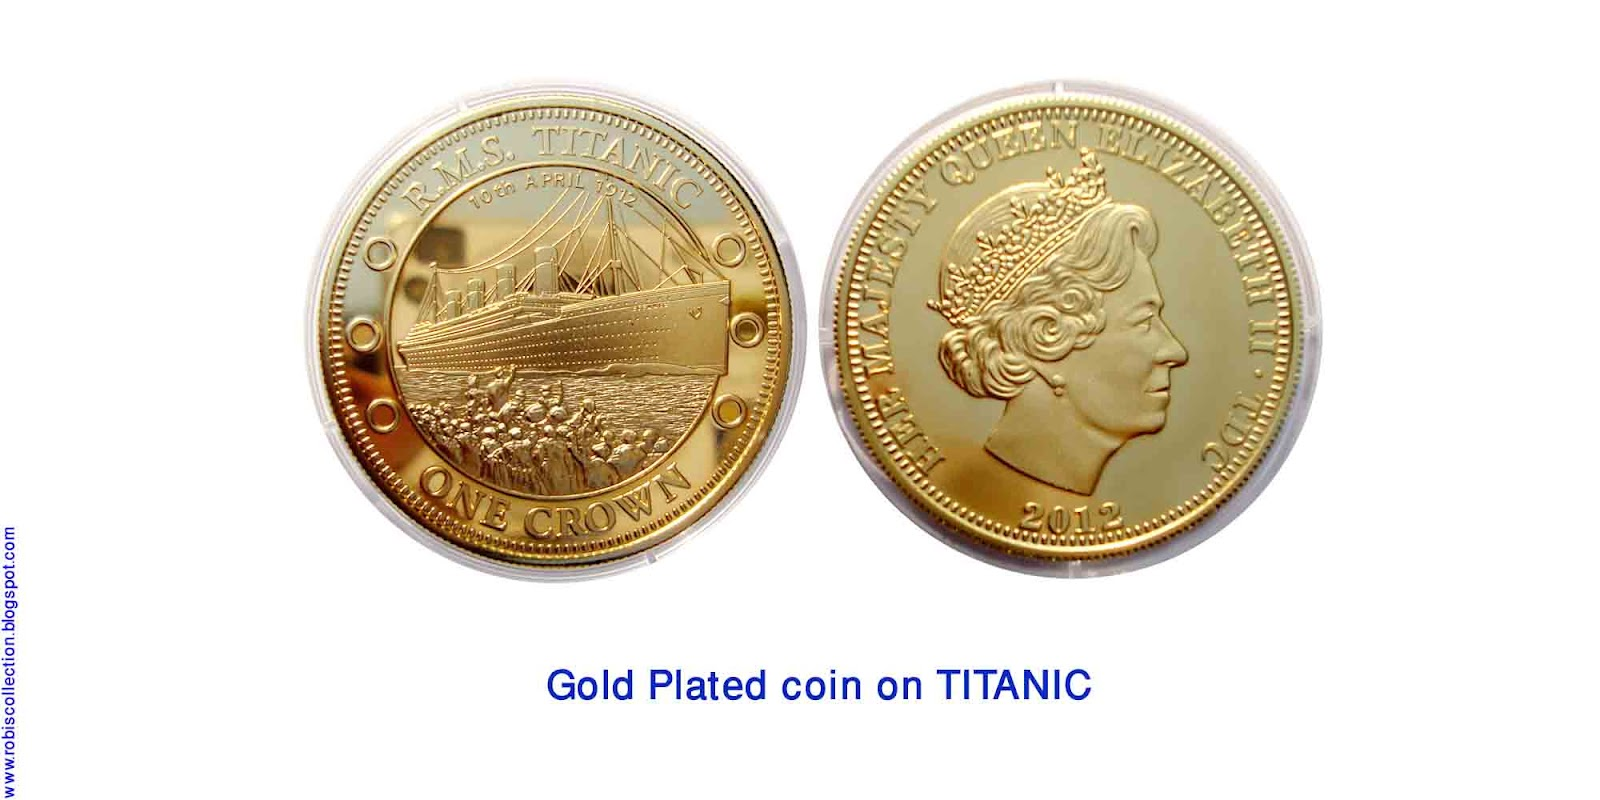 tristan da cunha issued has issued these gold plated proof coins to commemorate the 100th anniversary of the departure and sinking of the titanic in 1912